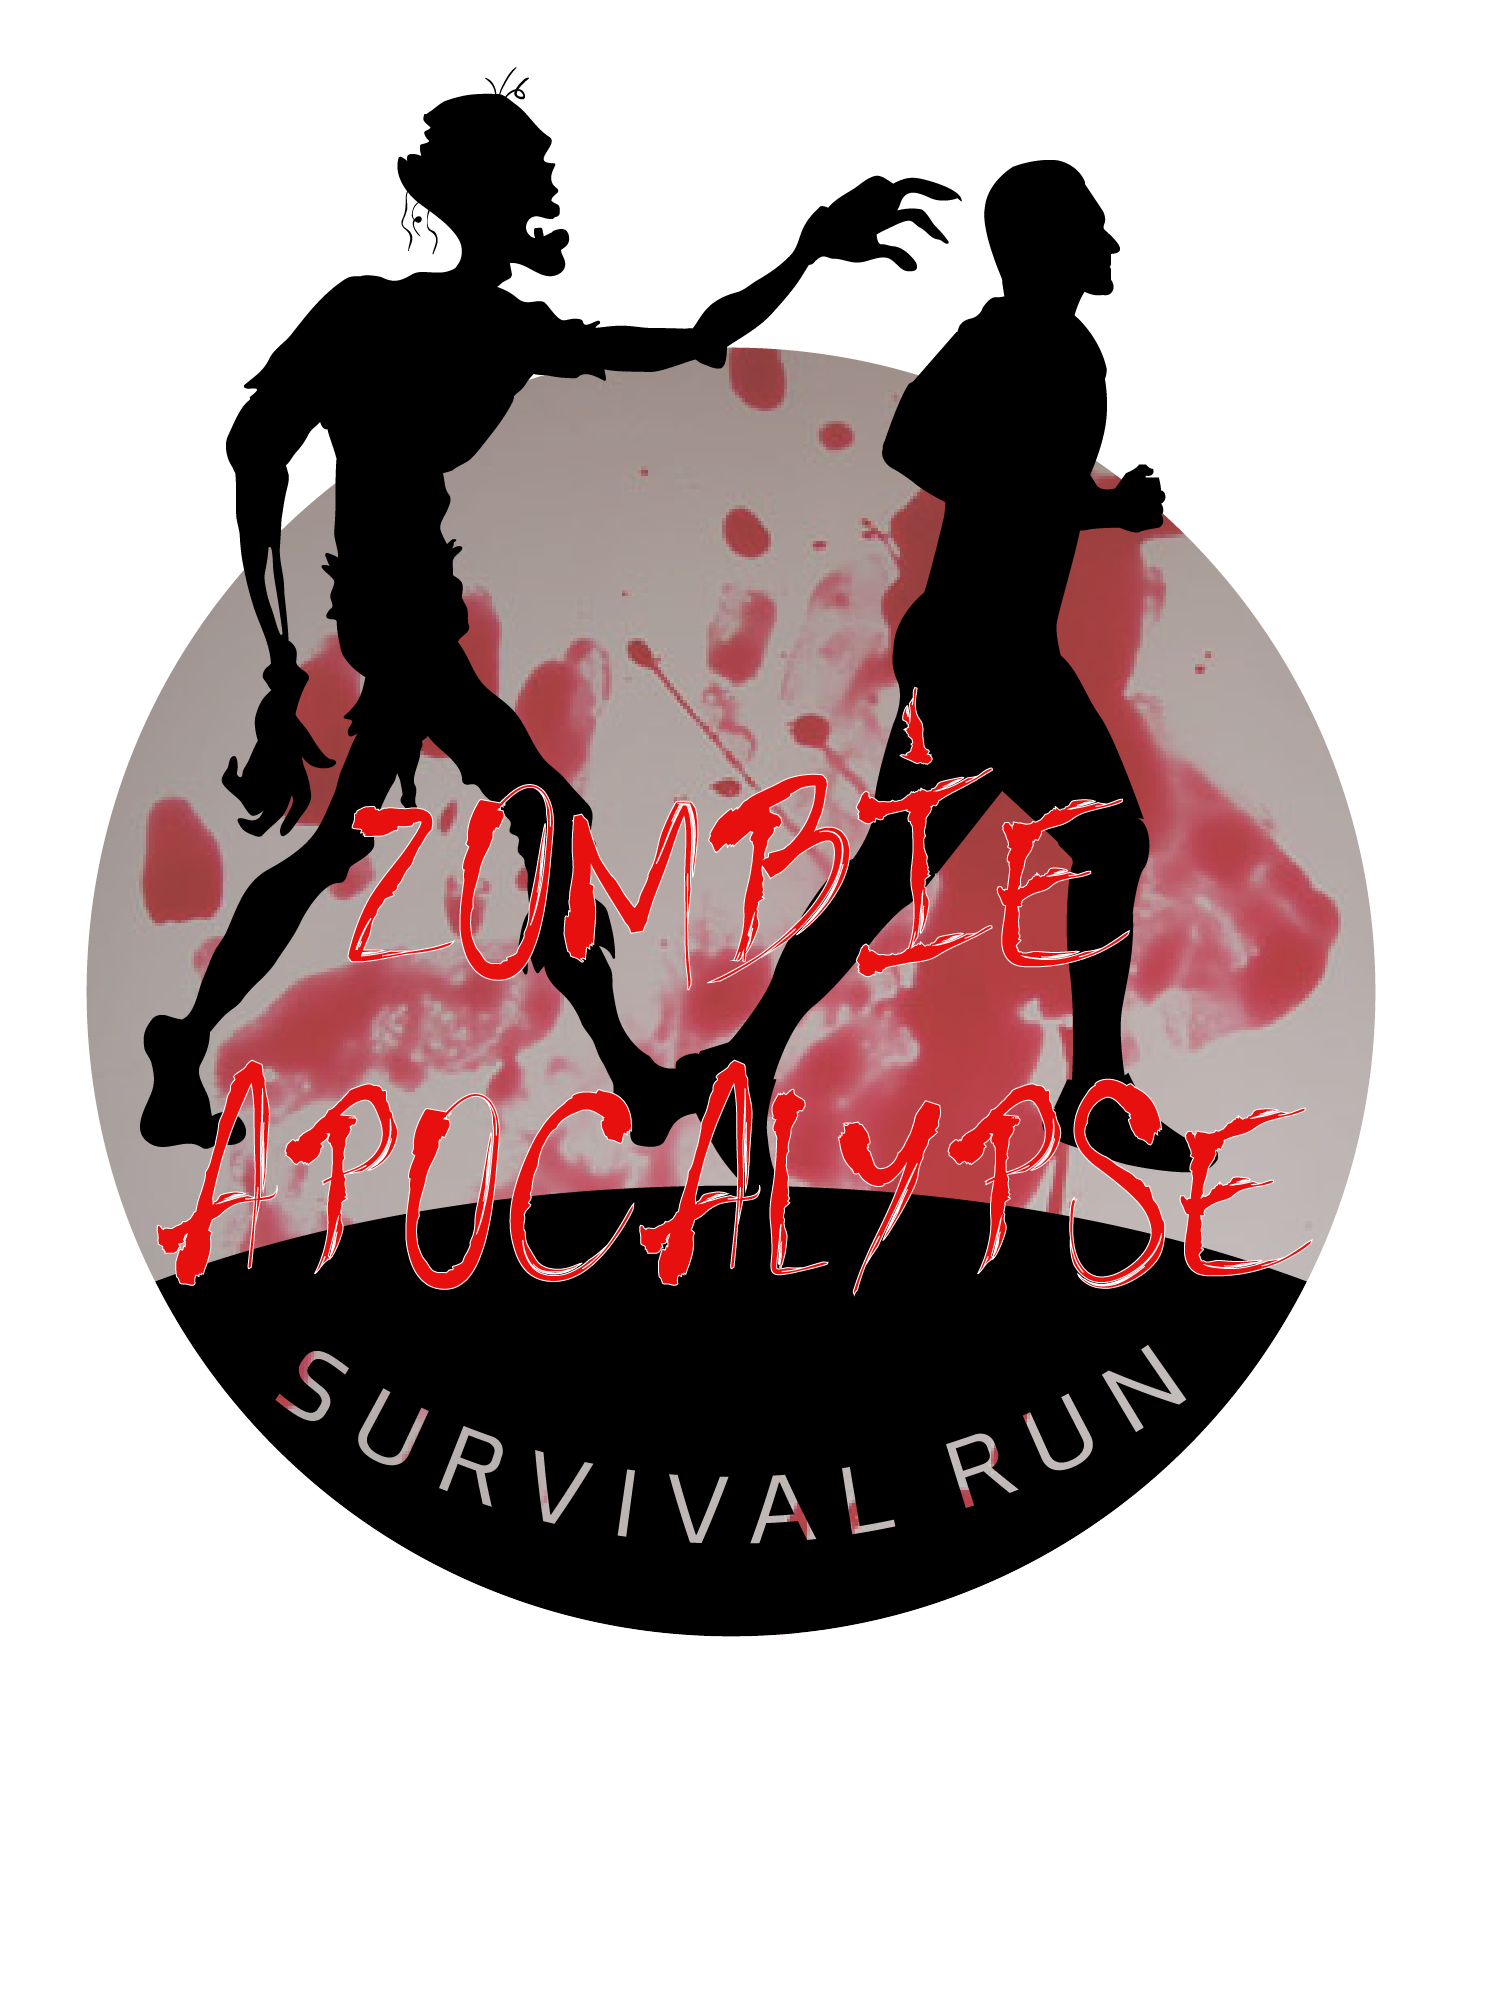 Zombie Apocalypse Survival Run